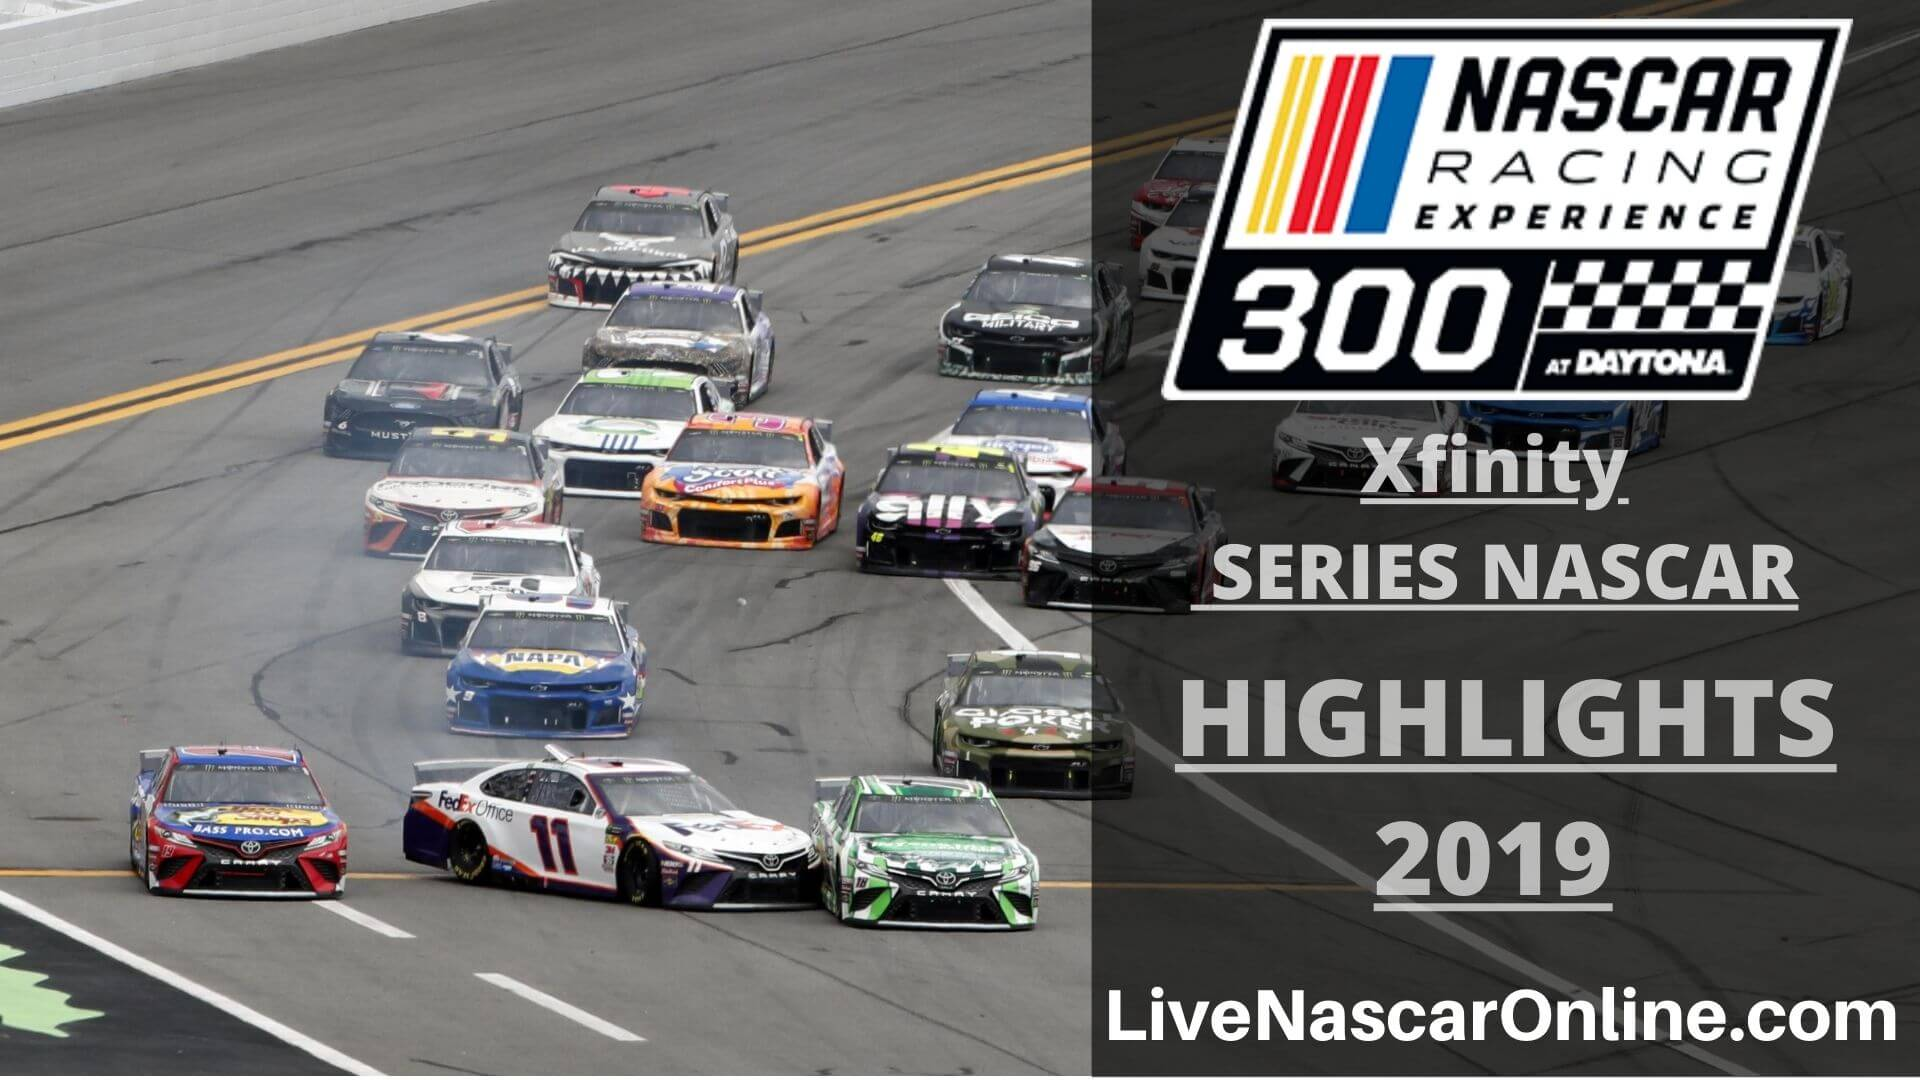 NASCAR XFINITY SERIES EXPERIENCE 300 HIGHLIGHTS 2019 Online